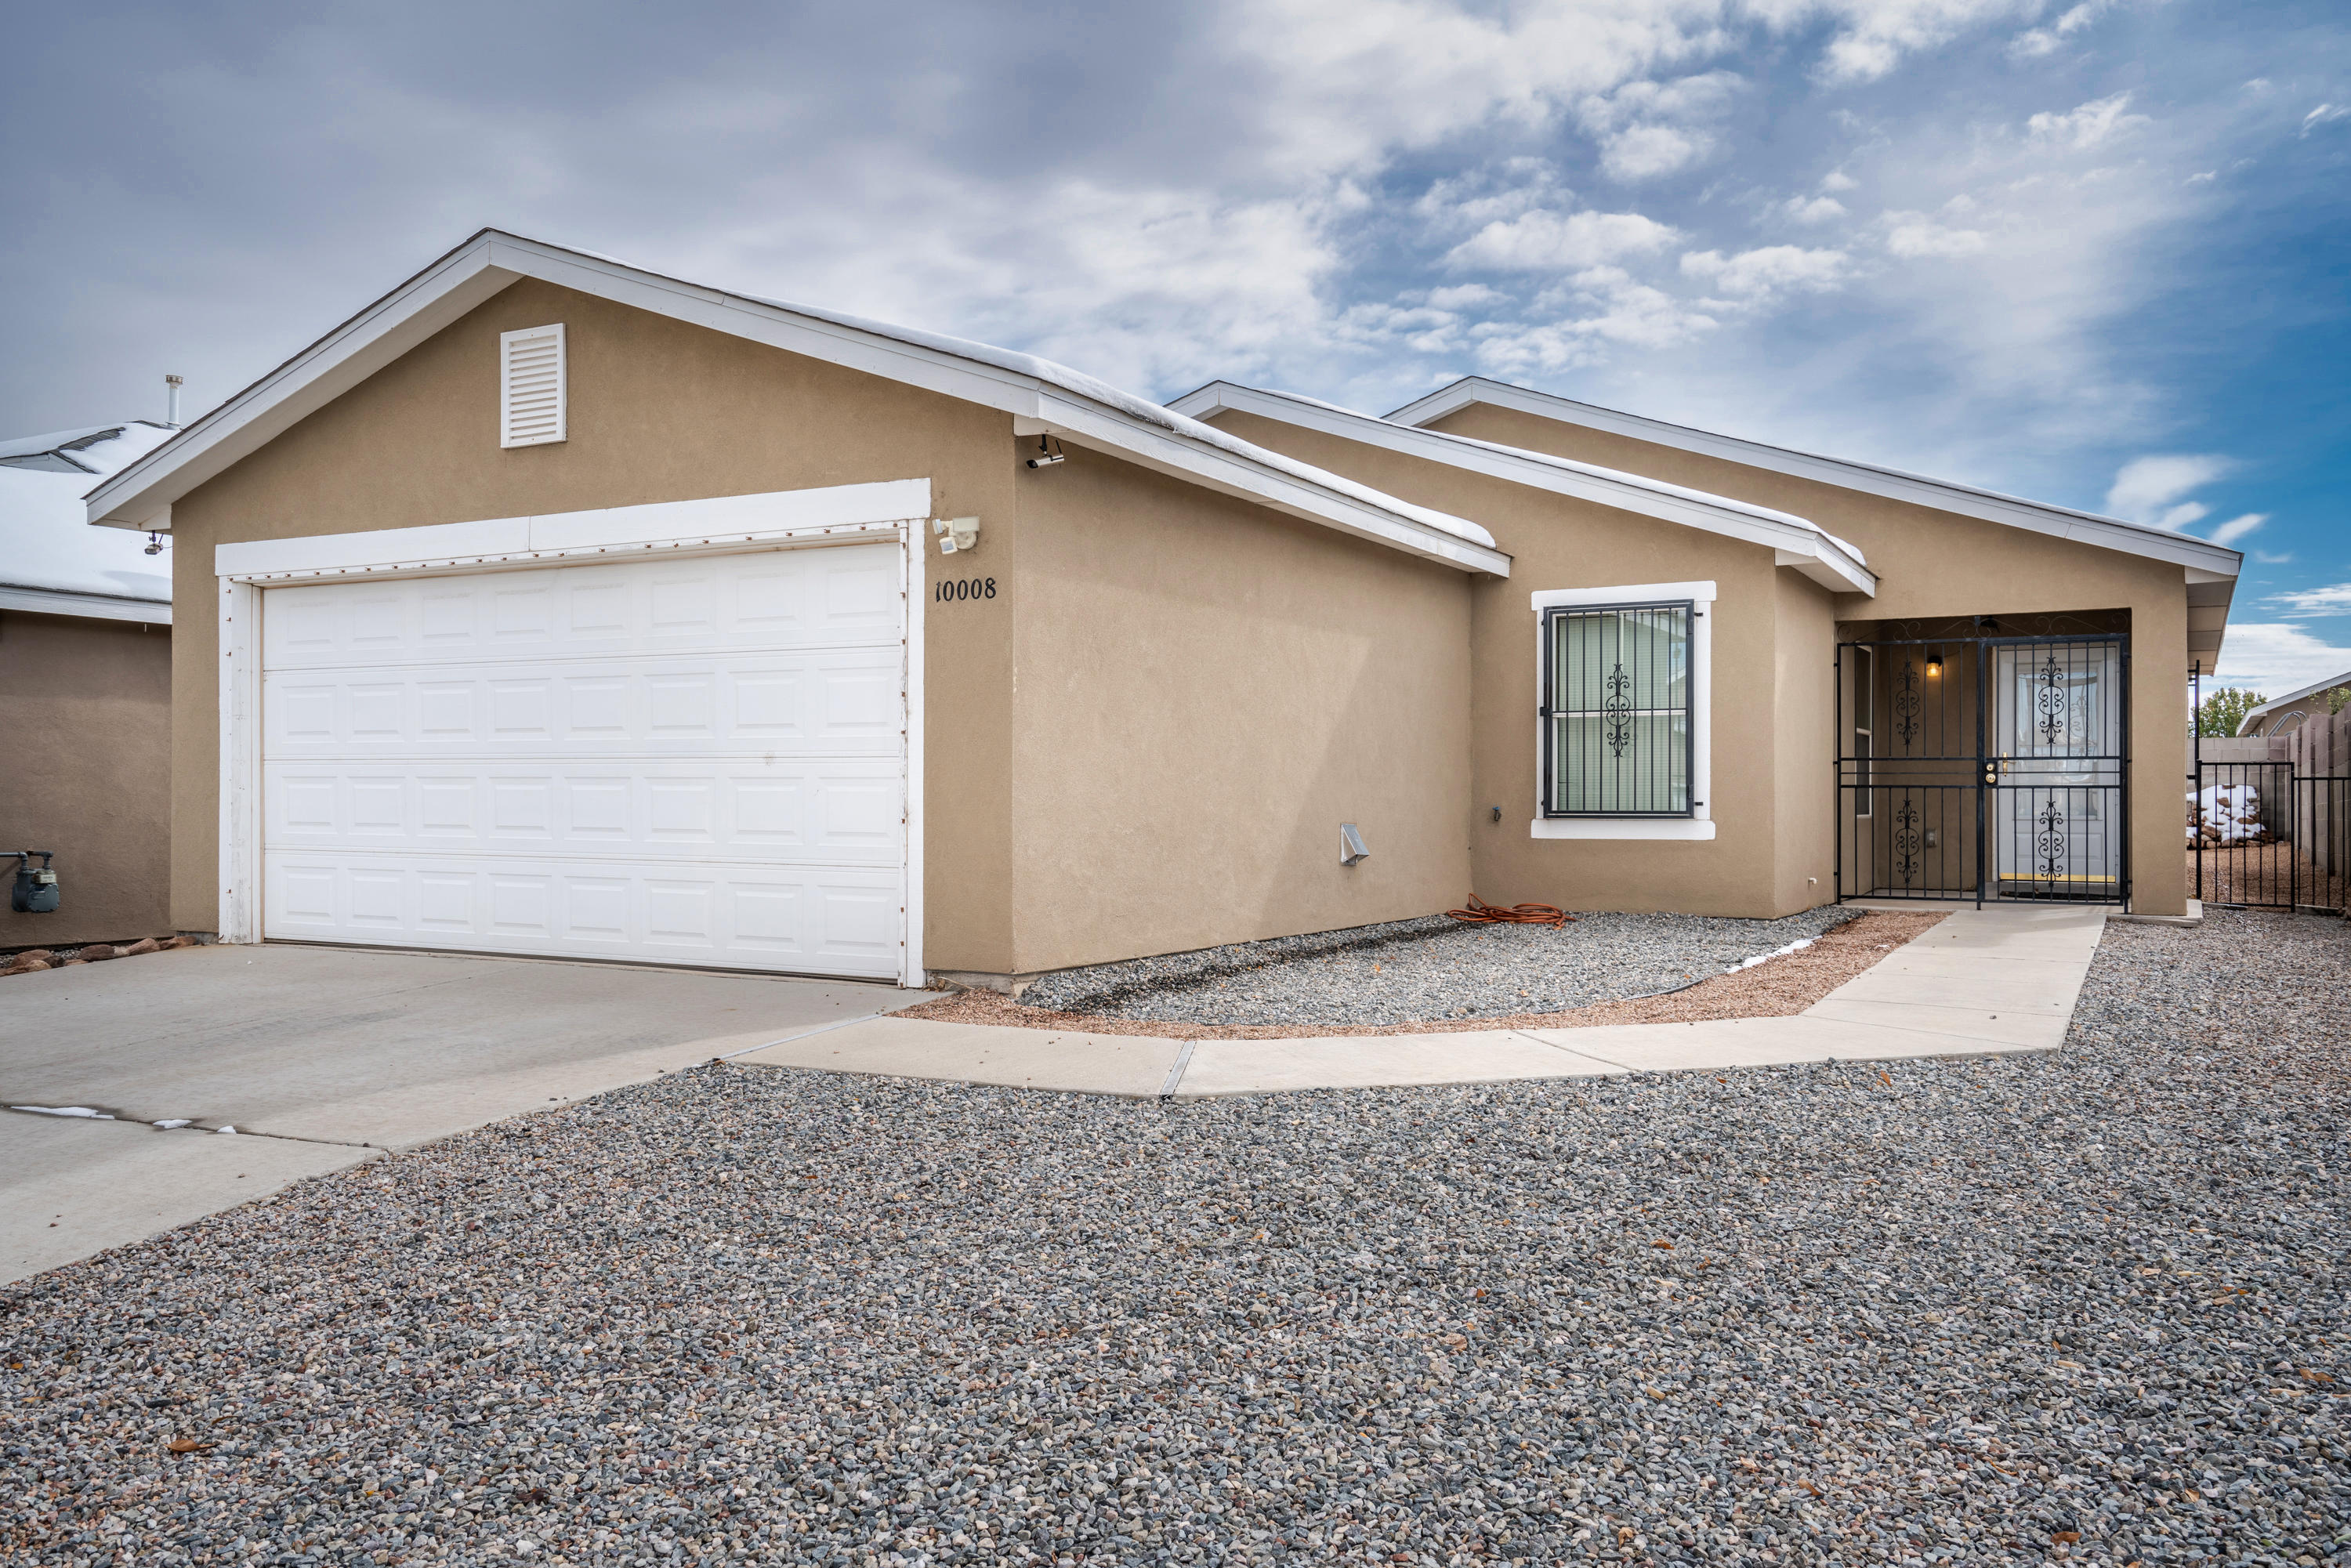 Remarkable southwest heights home ready for immediate move in. Recently added flooring, conveniently located near shopping areas, park, and minutes away from highway. Schedule showing soon!